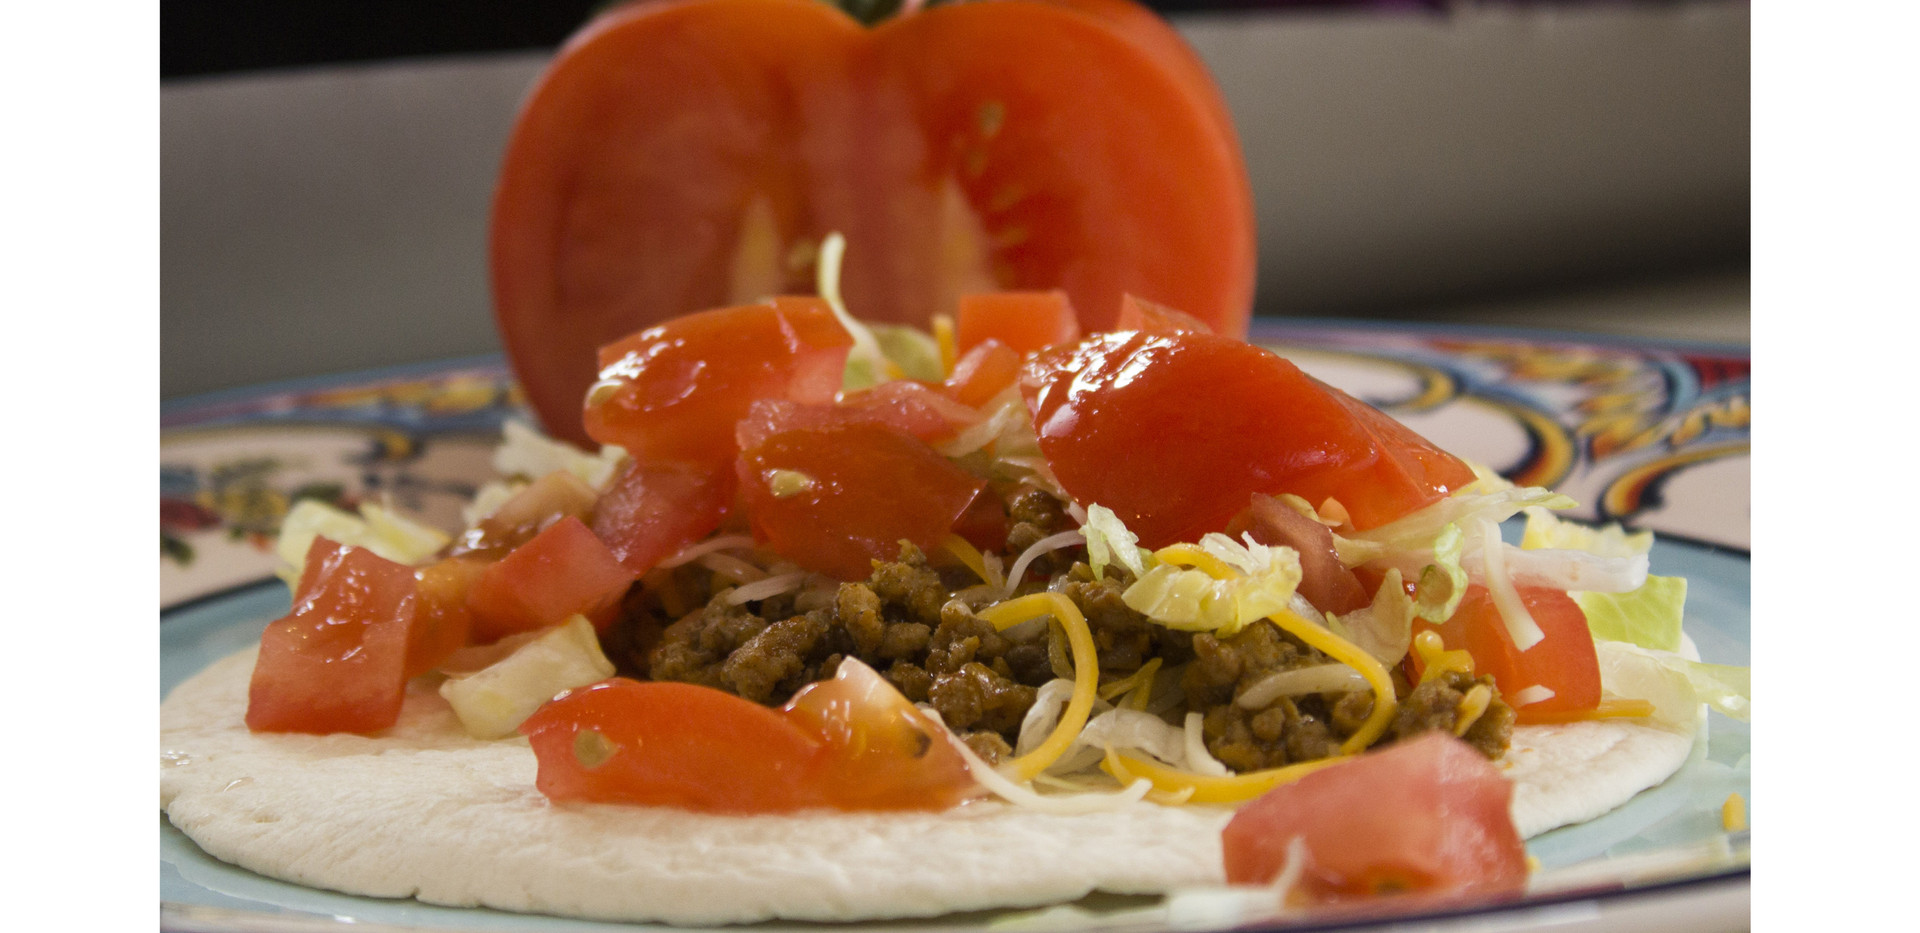 Taco with tomato background (Spanish Chef Project)